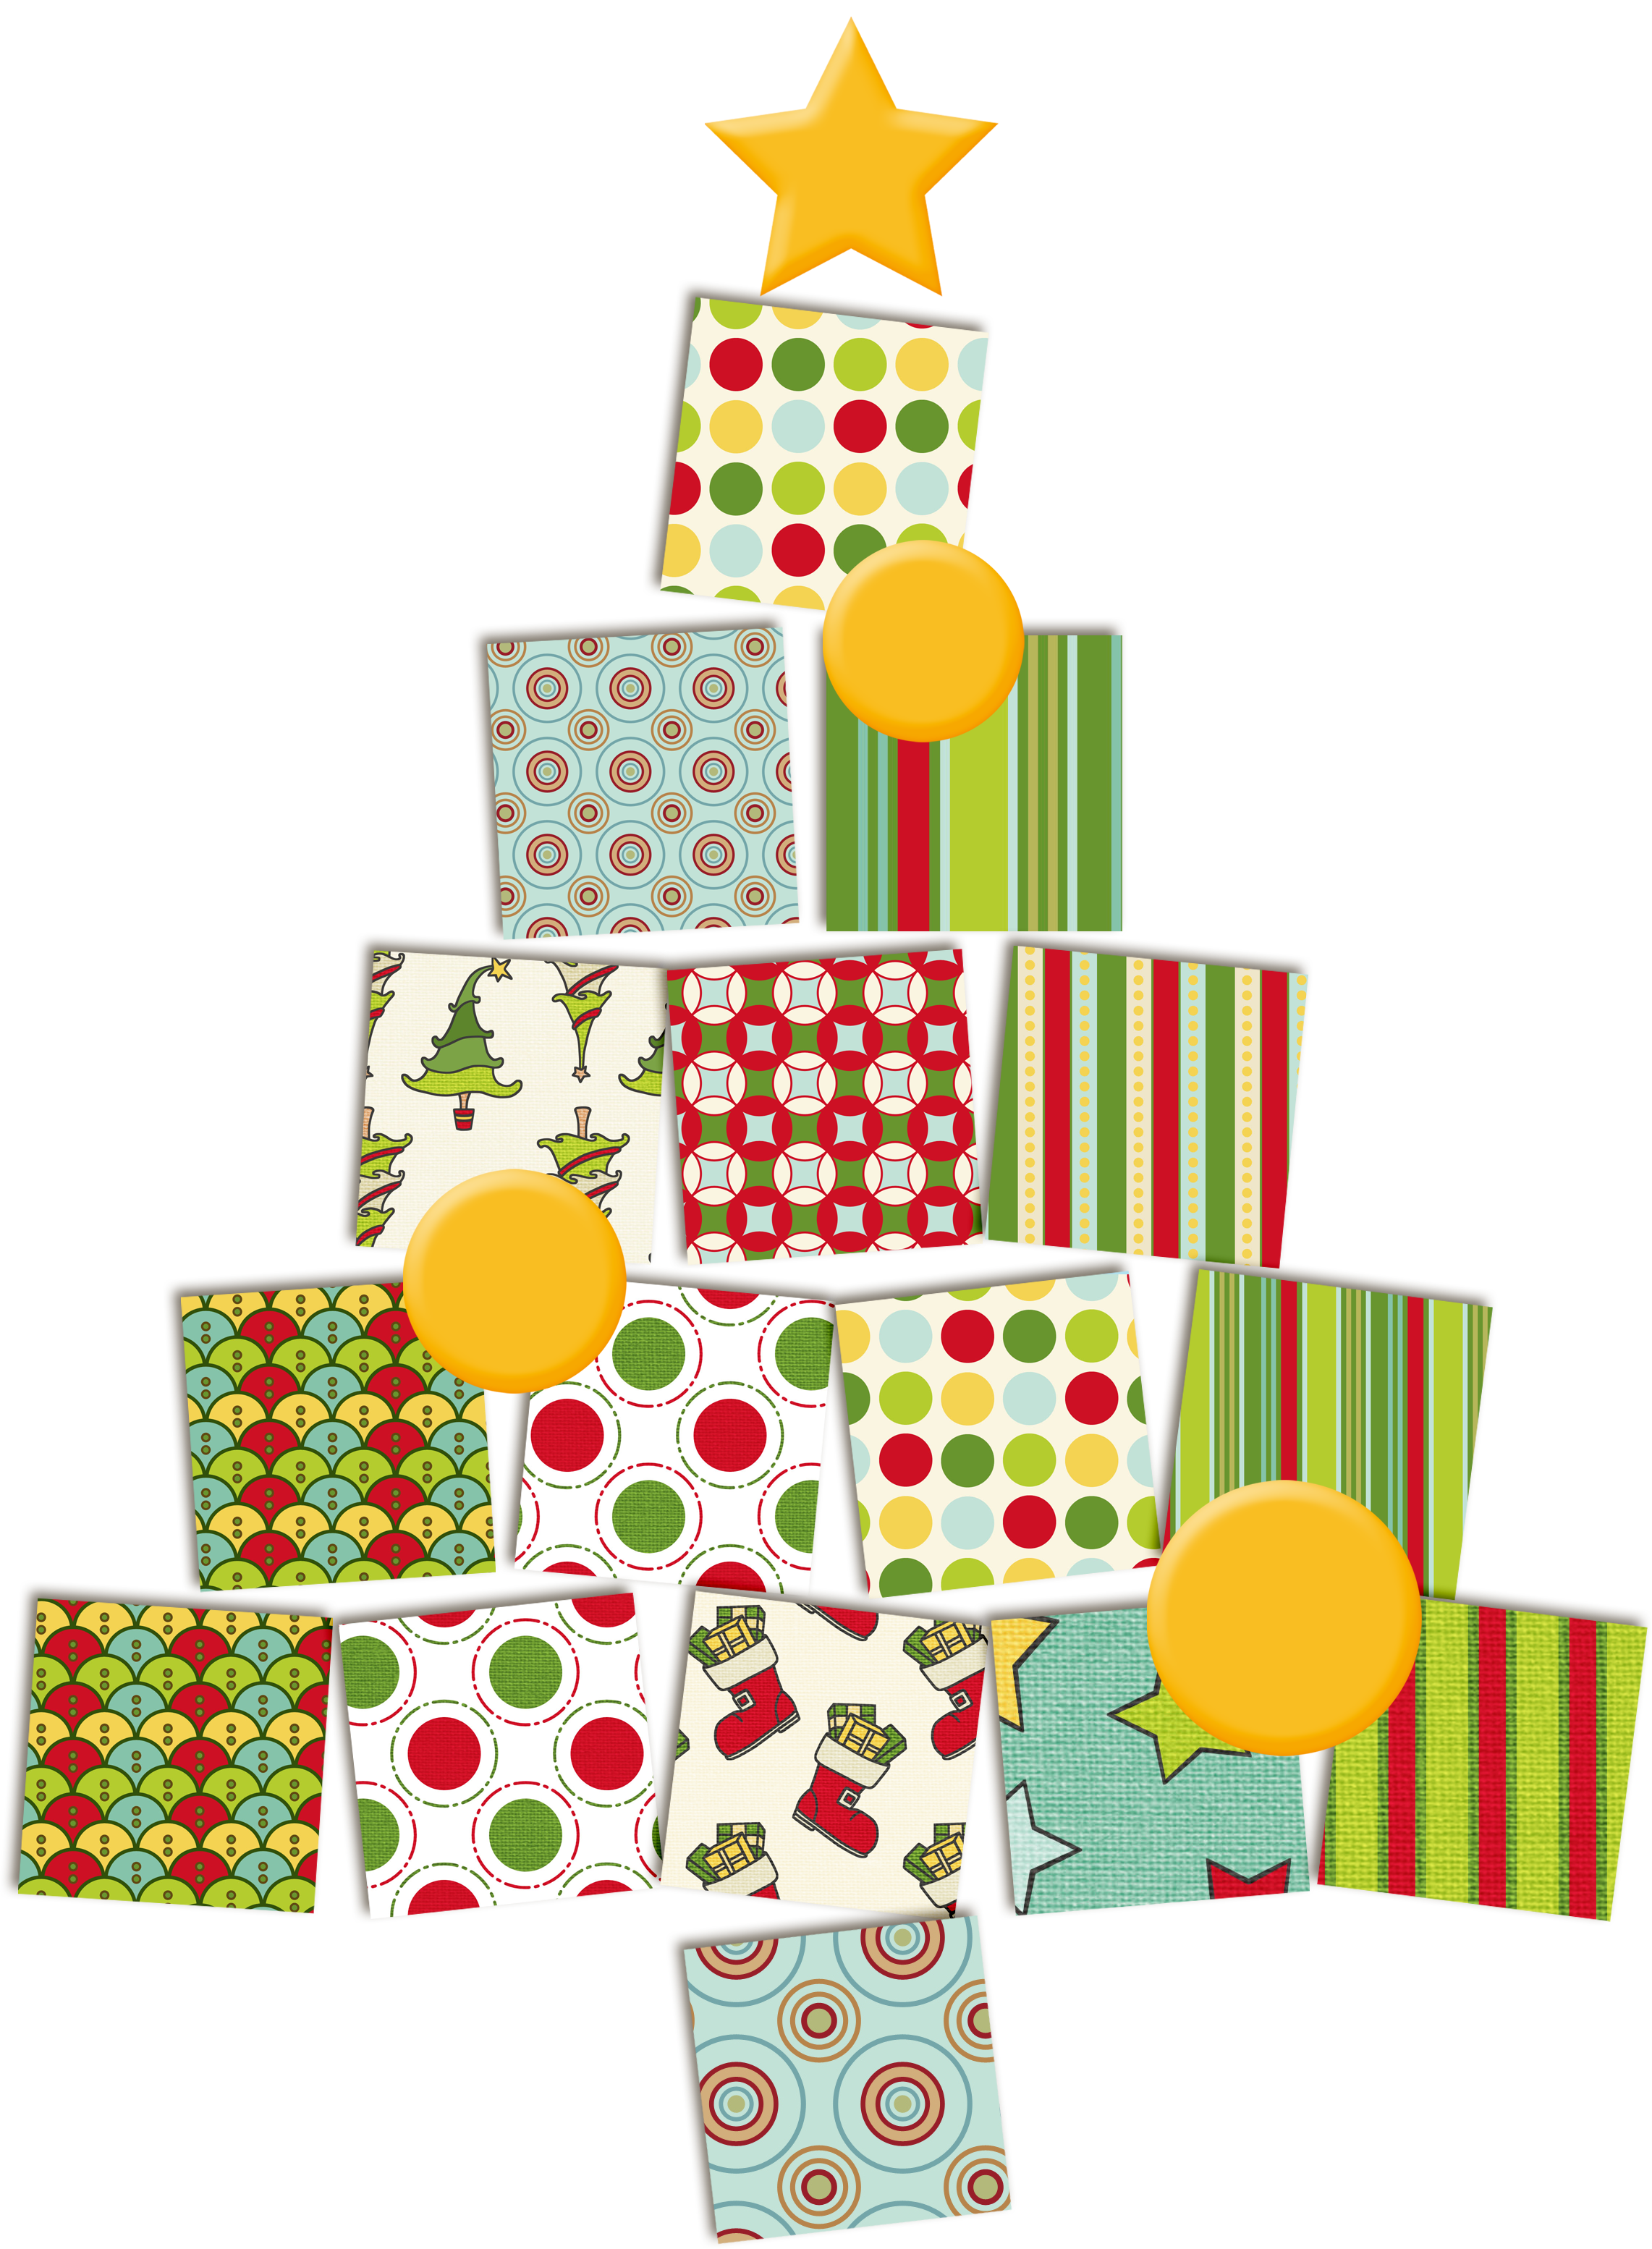 Ripped snowflake wrapping paper clipart image library library Photo by @rosimeri - Minus | christmas | Pinterest | Christmas tree ... image library library